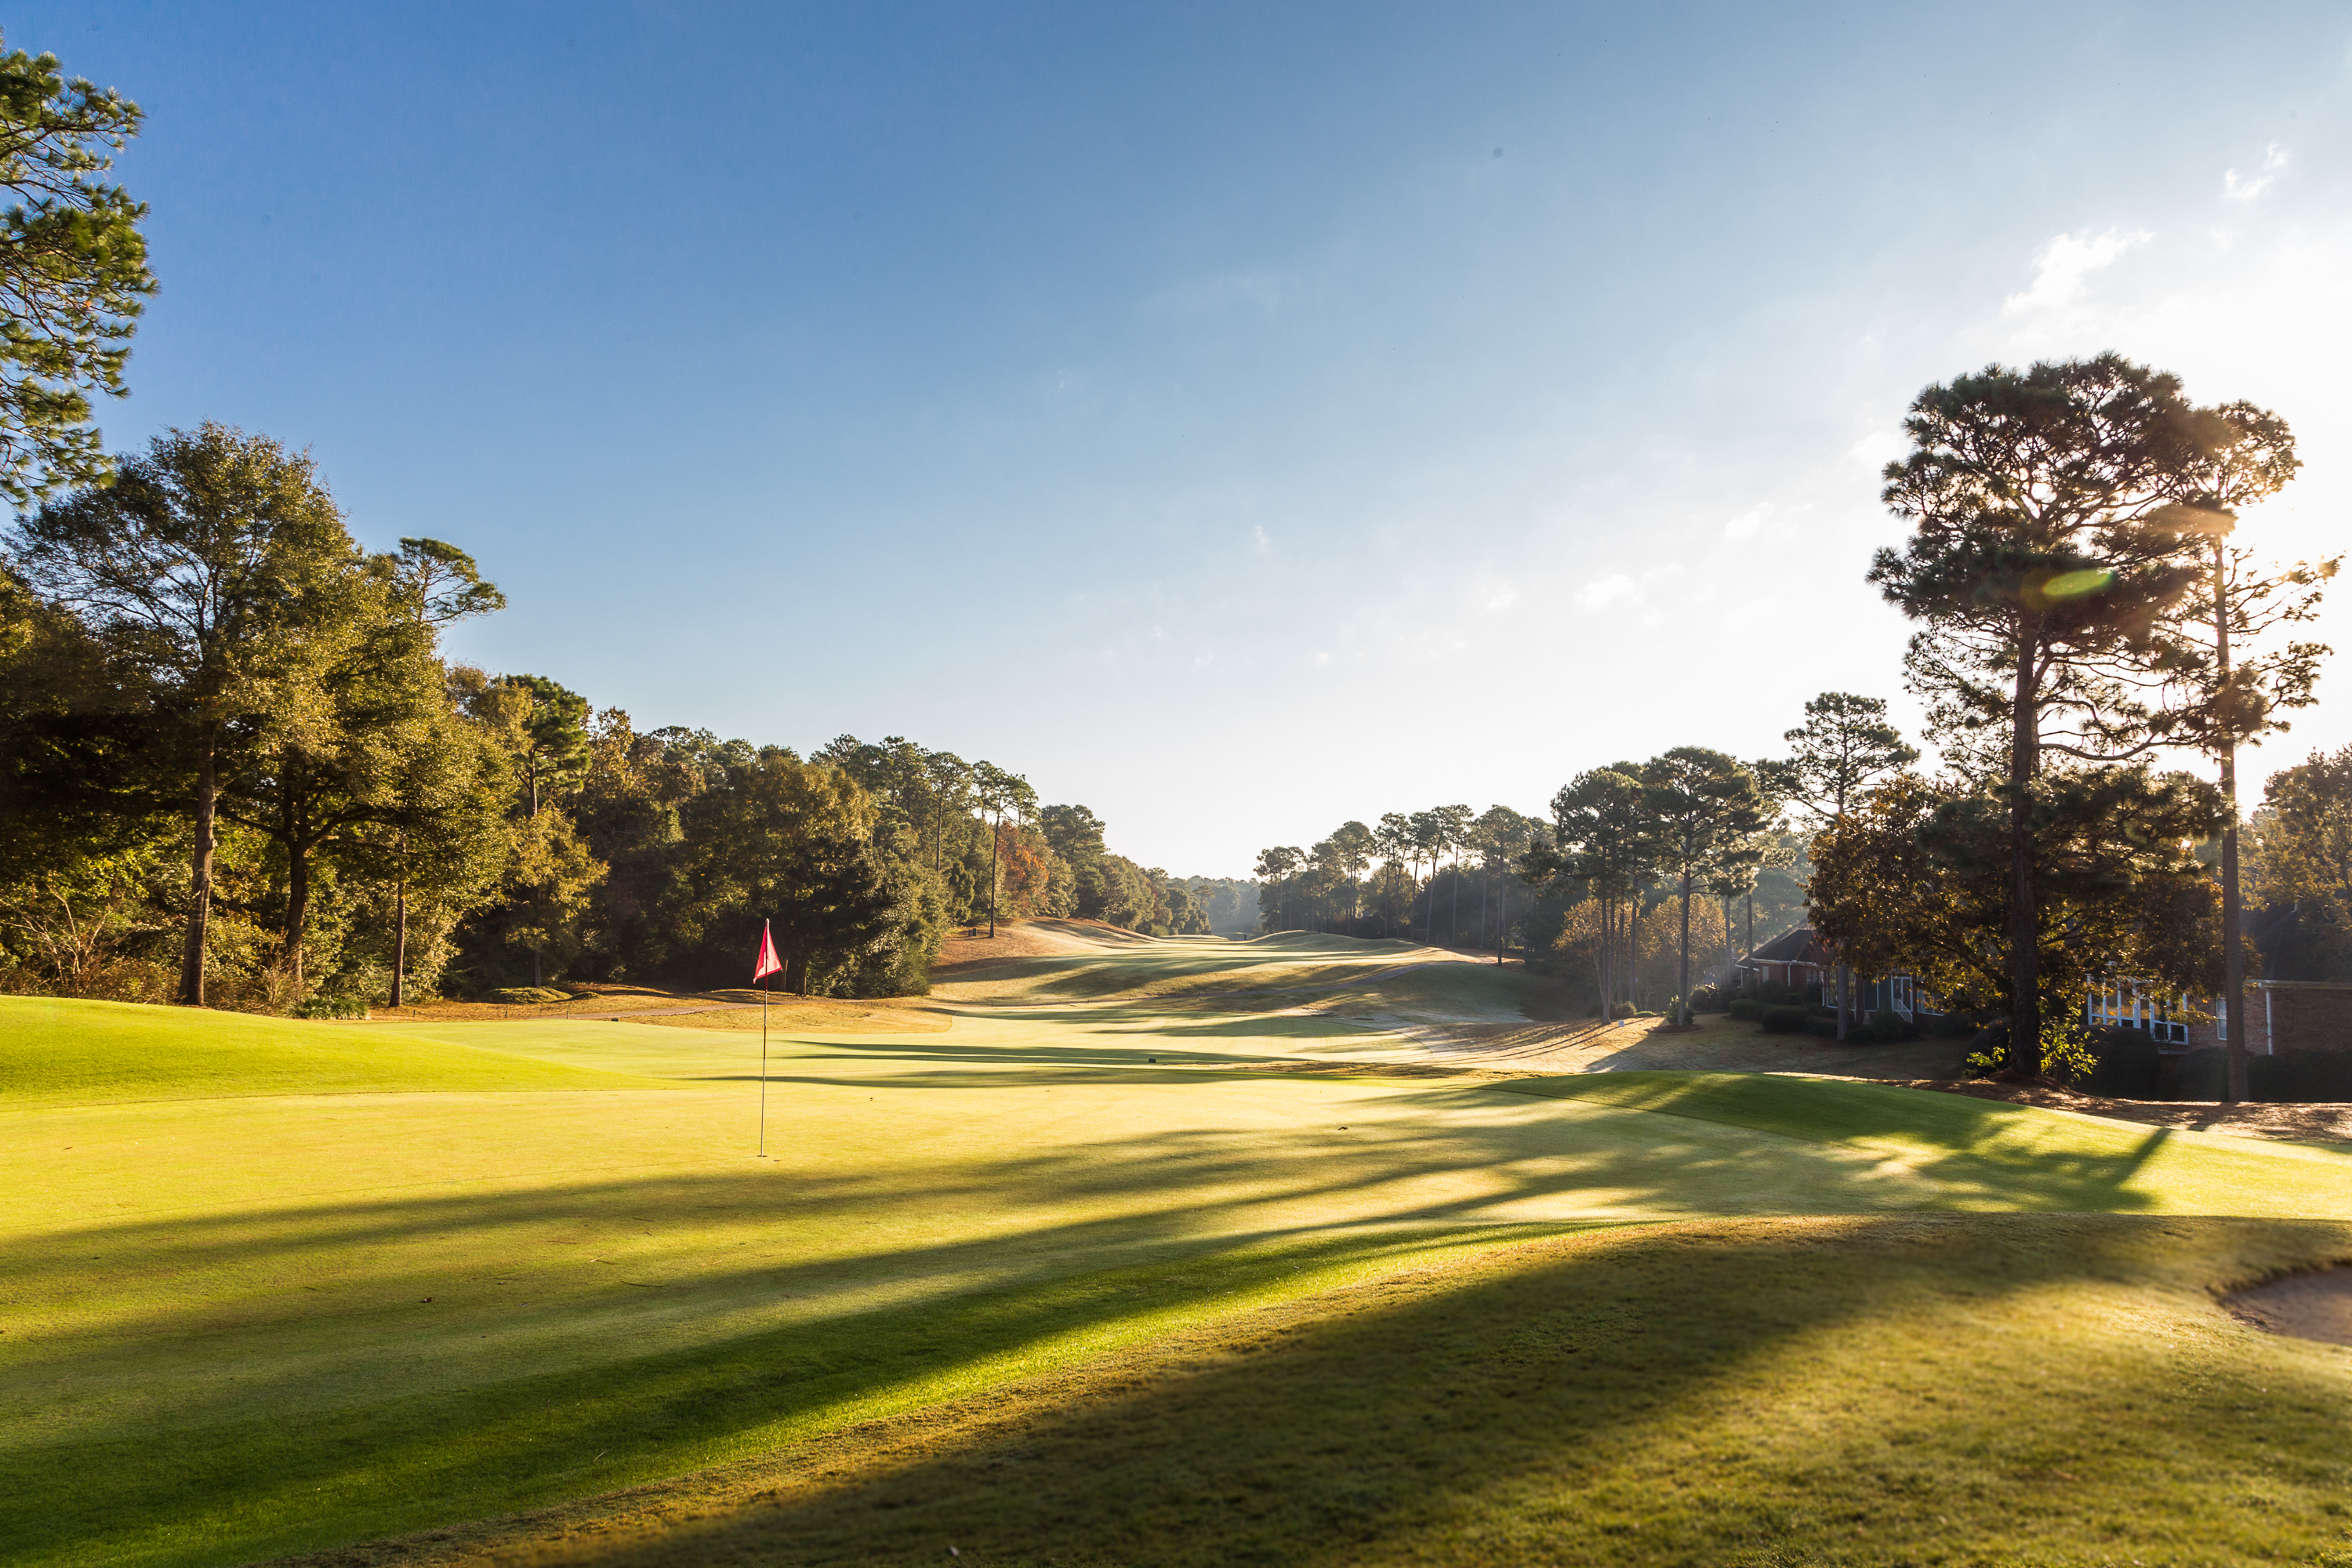 https://alabama-travel.s3.amazonaws.com/partners-uploads/photo/image/5a4e7136161f32238f0000d3/_141120_nrk_rock_creek_course_photos_2.jpg